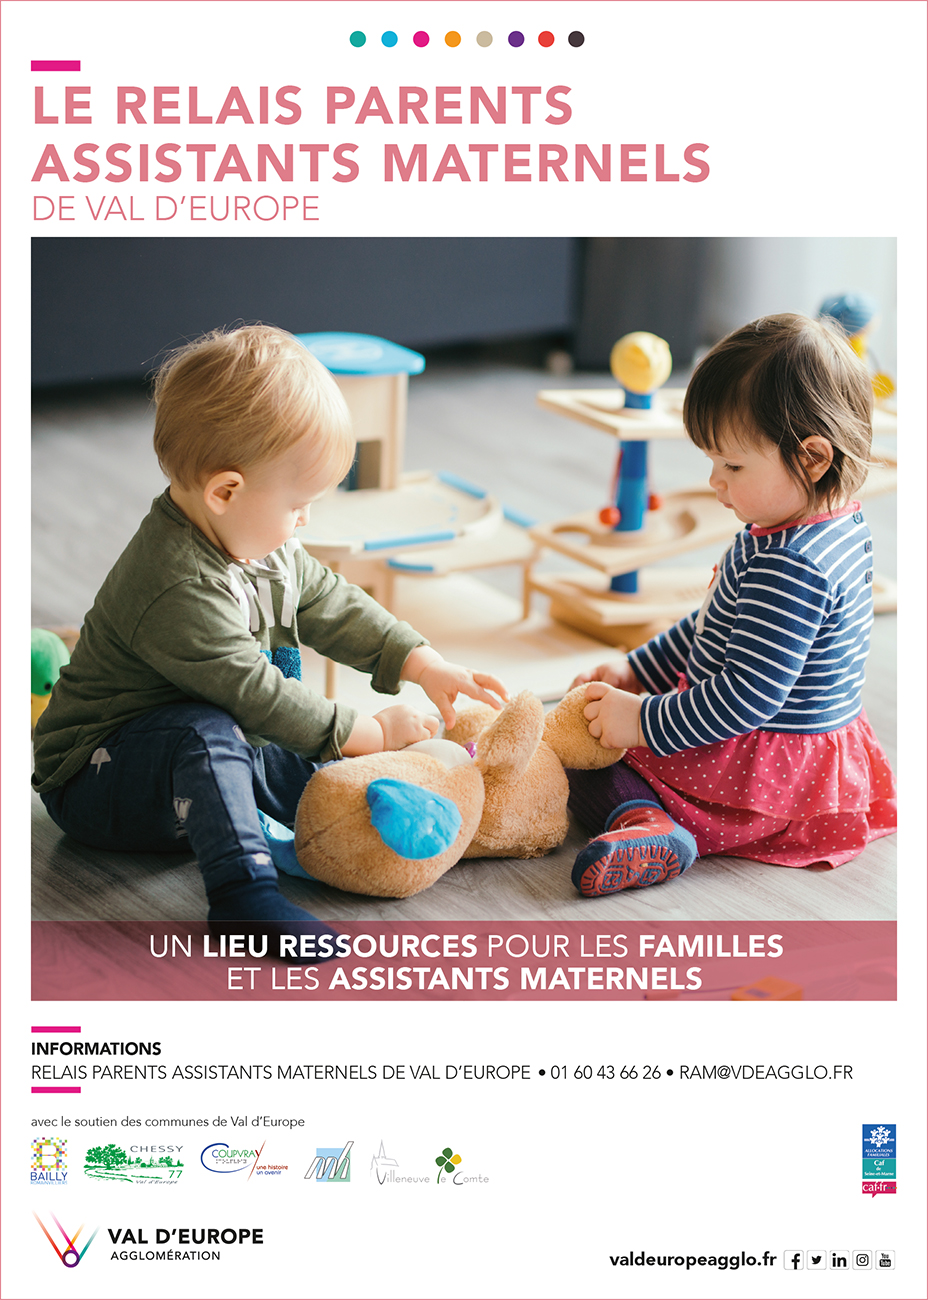 Le Relais Parents Assistants Maternels de Val d'Europe